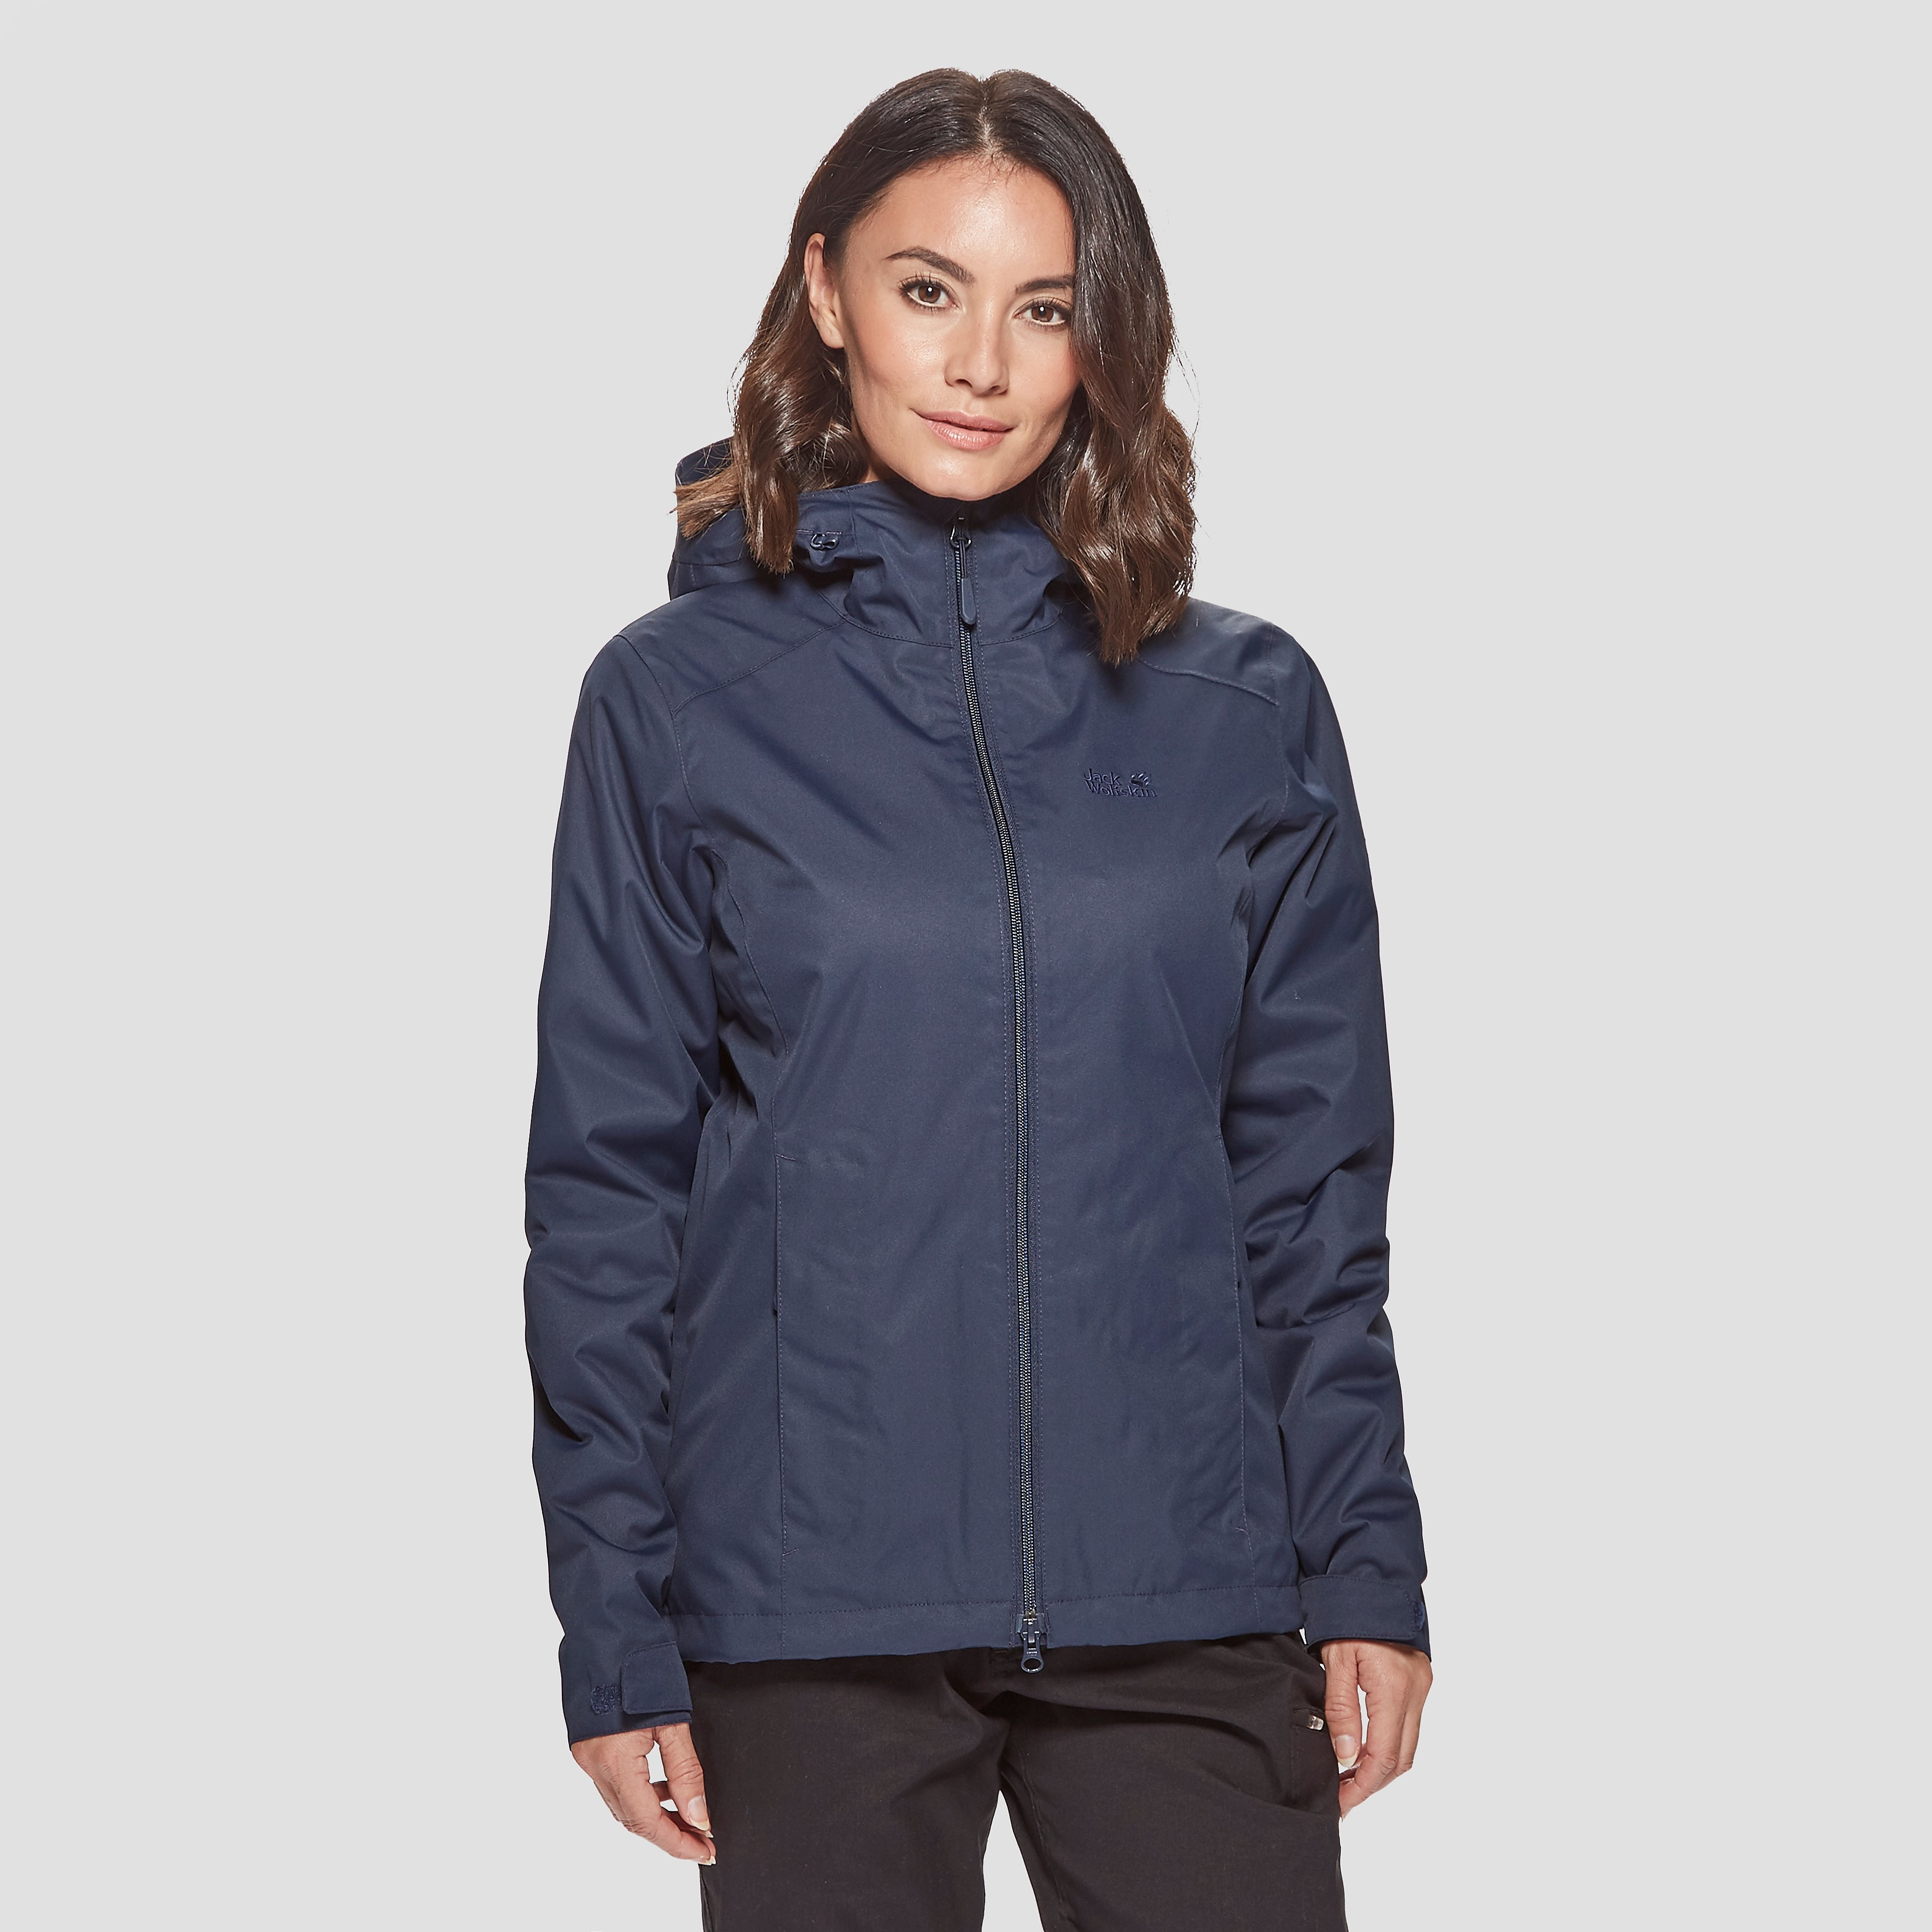 Jack Wolfskin Chilly Morning Women's Jacket